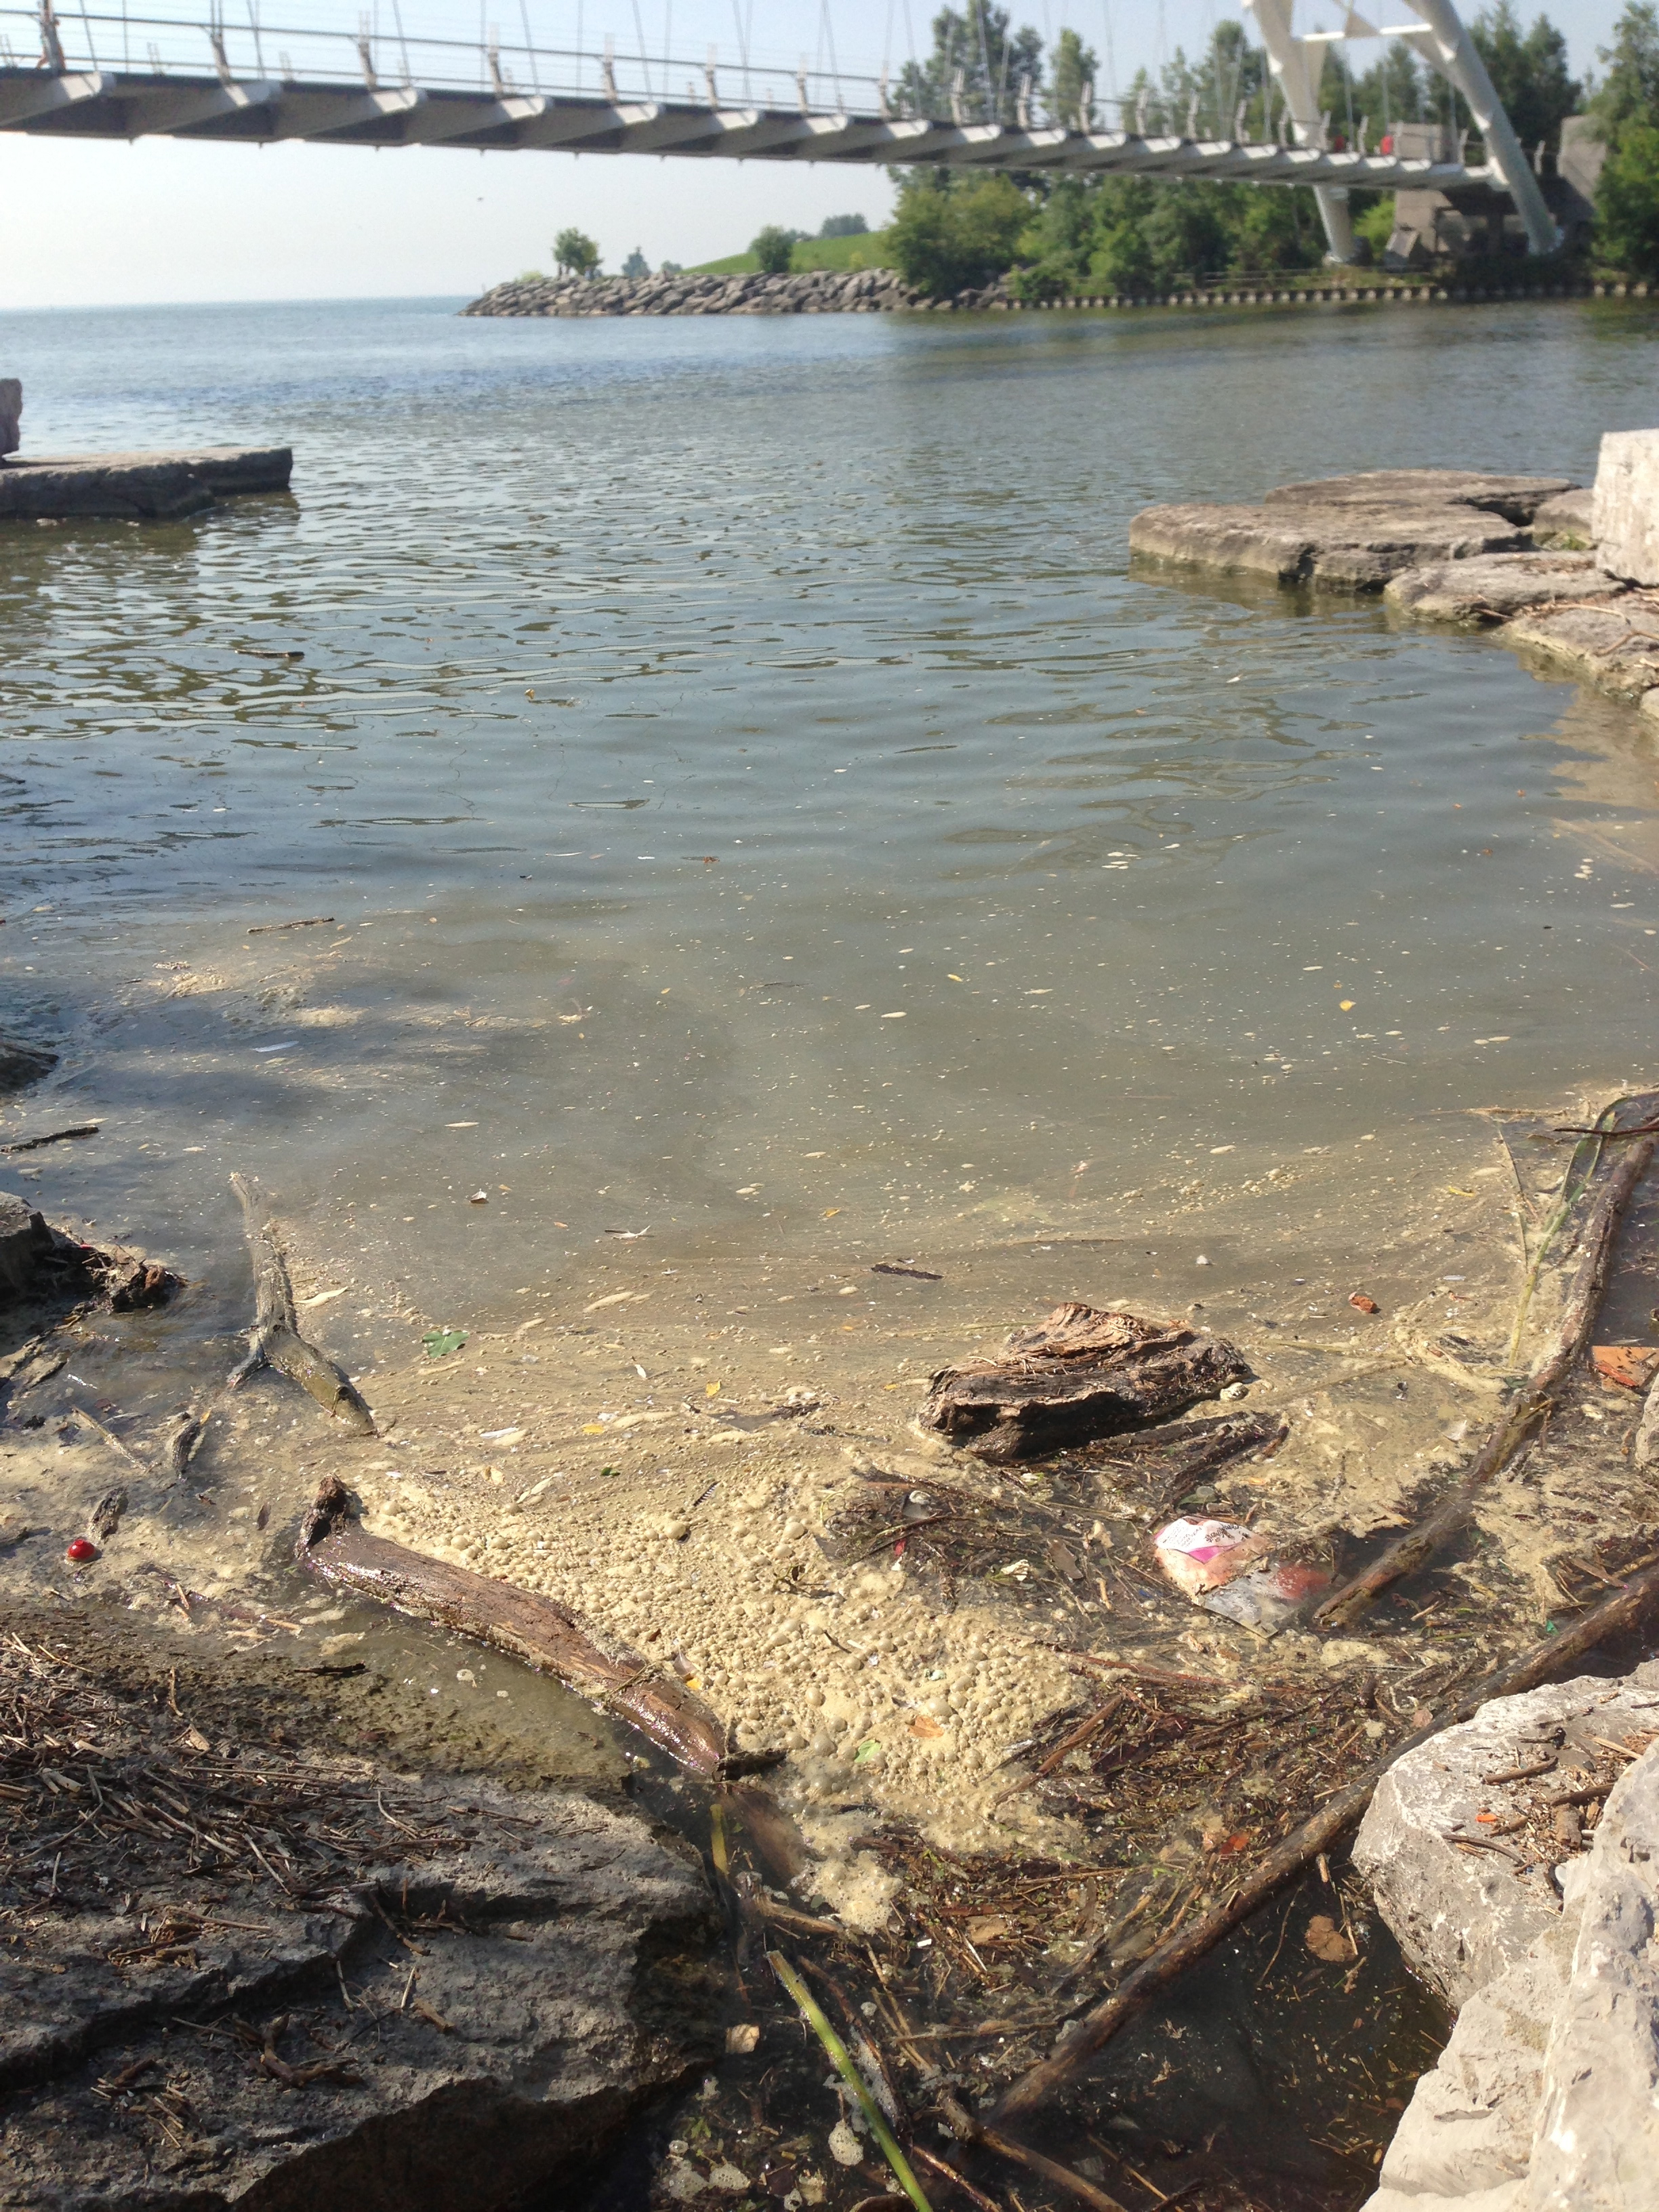 Pollution from the Toronto storm and Humber Wastewater Treatment Plant wash ashore, July 16, 2013. Photo by Lake Ontario Waterkeeper.